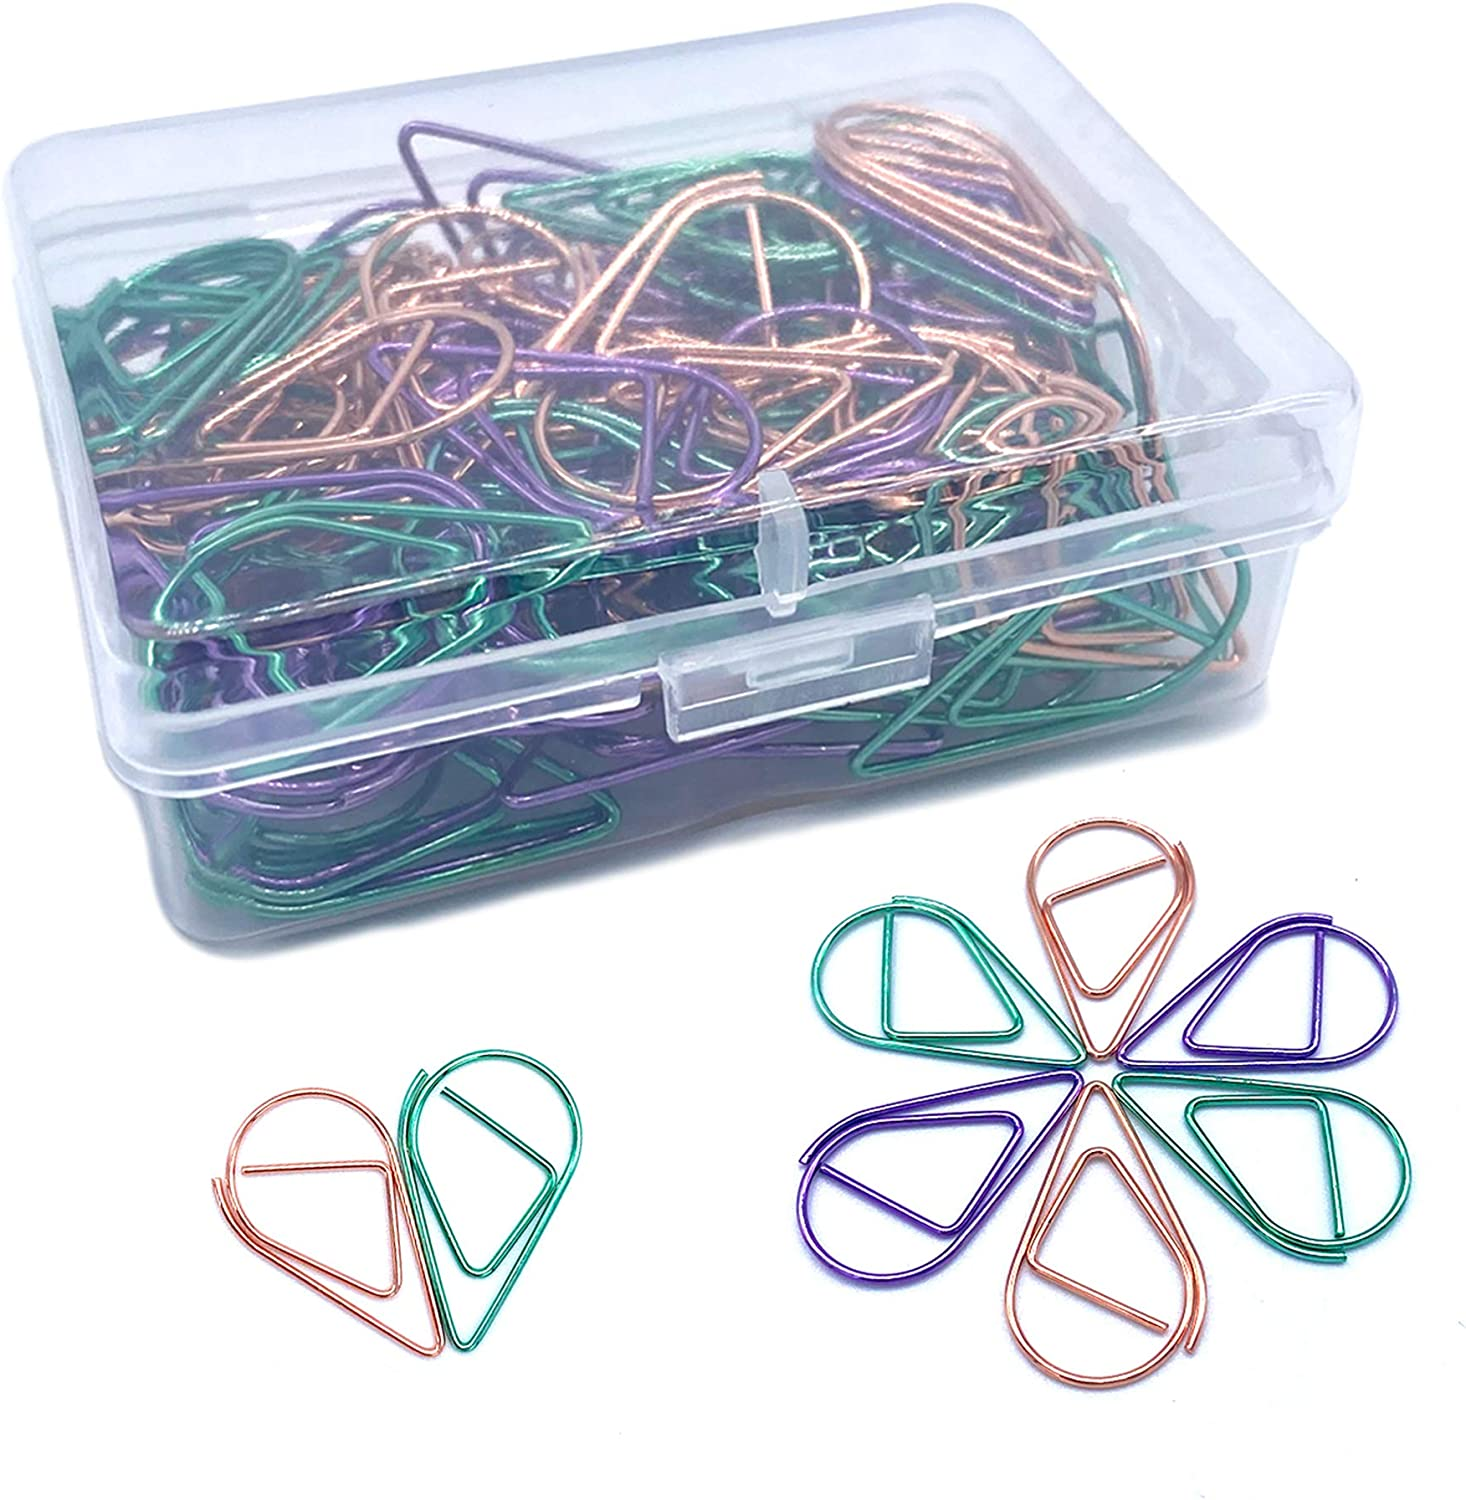 120 Pcs Multicolor Paper Clips, Smooth Steel Wire Paperclips for Office Supplier School Student(1 inch / 25mm)